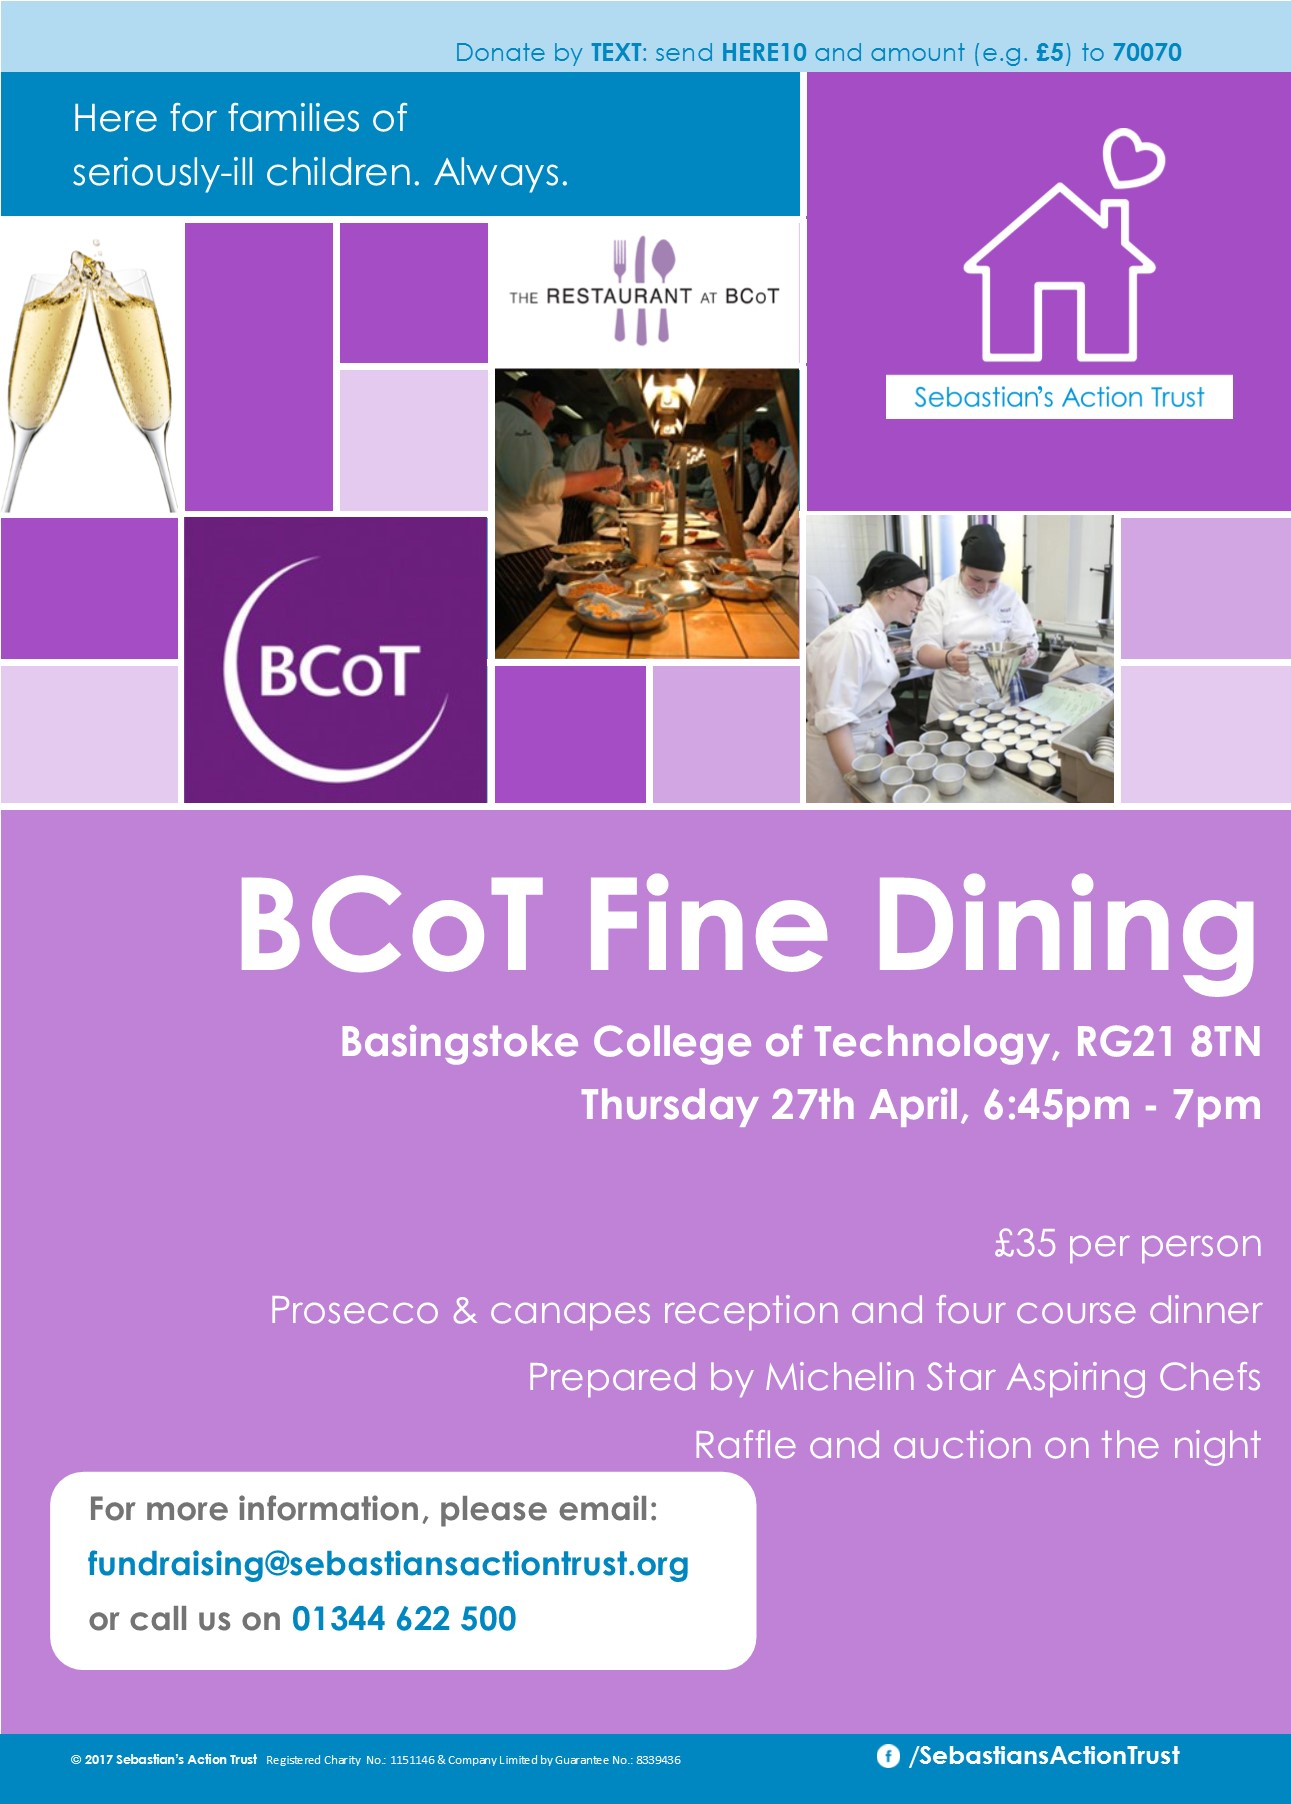 BCOT Fine Dining